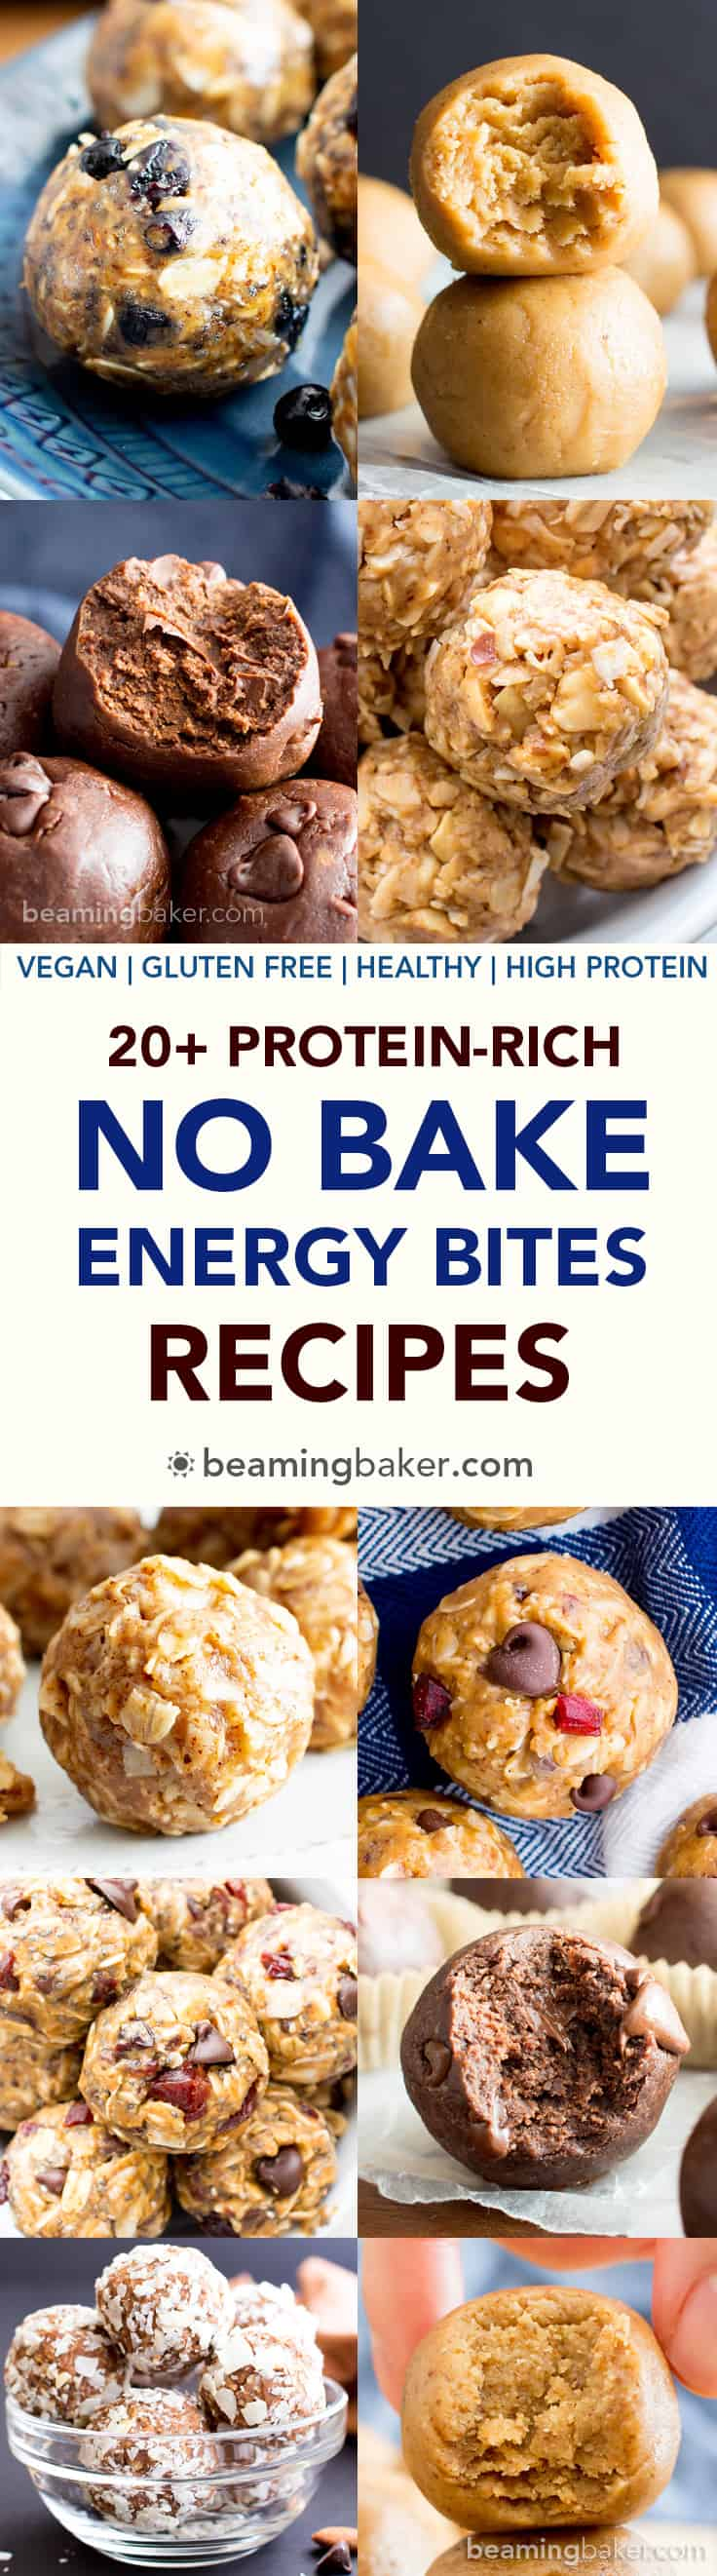 20+ Easy No Bake Energy Bites Recipes (V, GF): the best collection of healthy and tasty no bake energy bites recipes! Perfect for meal prep, on the go breakfasts, workout snacks and more! #Vegan #GlutenFree #DairyFree #RefinedSugarFree #Healthy #NoBake #Snacks | Recipes on BeamingBaker.com